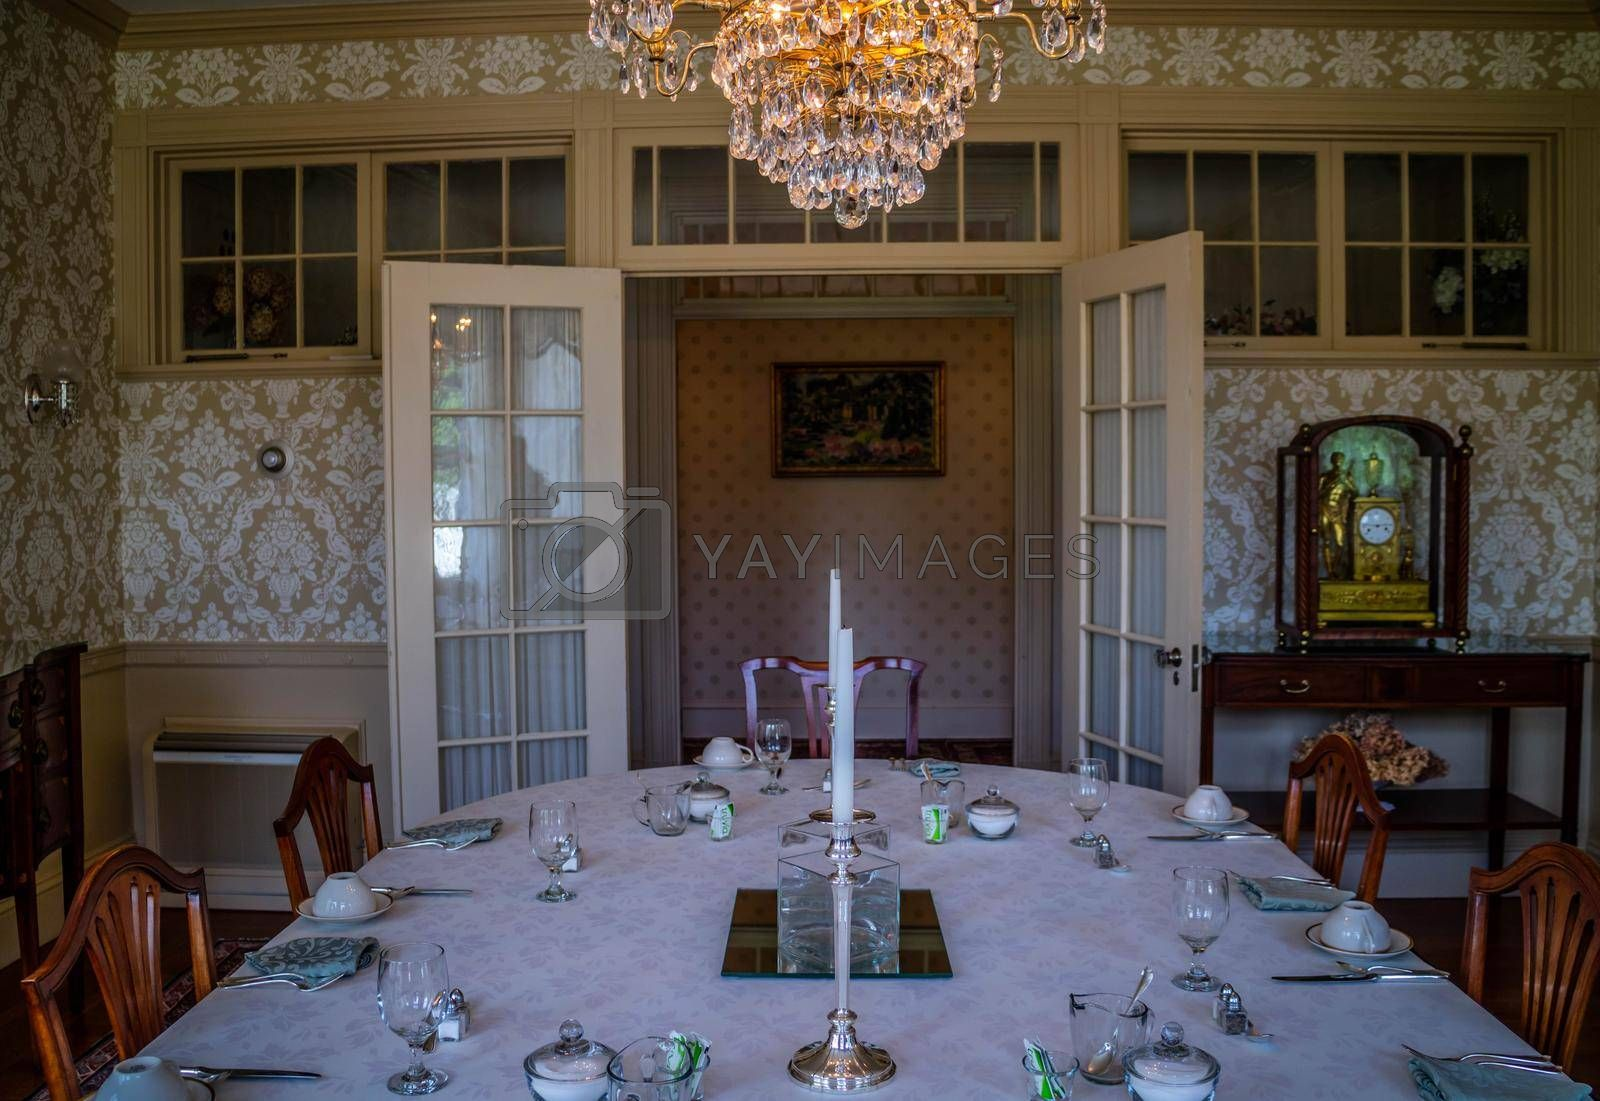 Royalty free image of Augusta, ME, USA - August 8, 2018: The dining area of Blaine's House by cherialguire